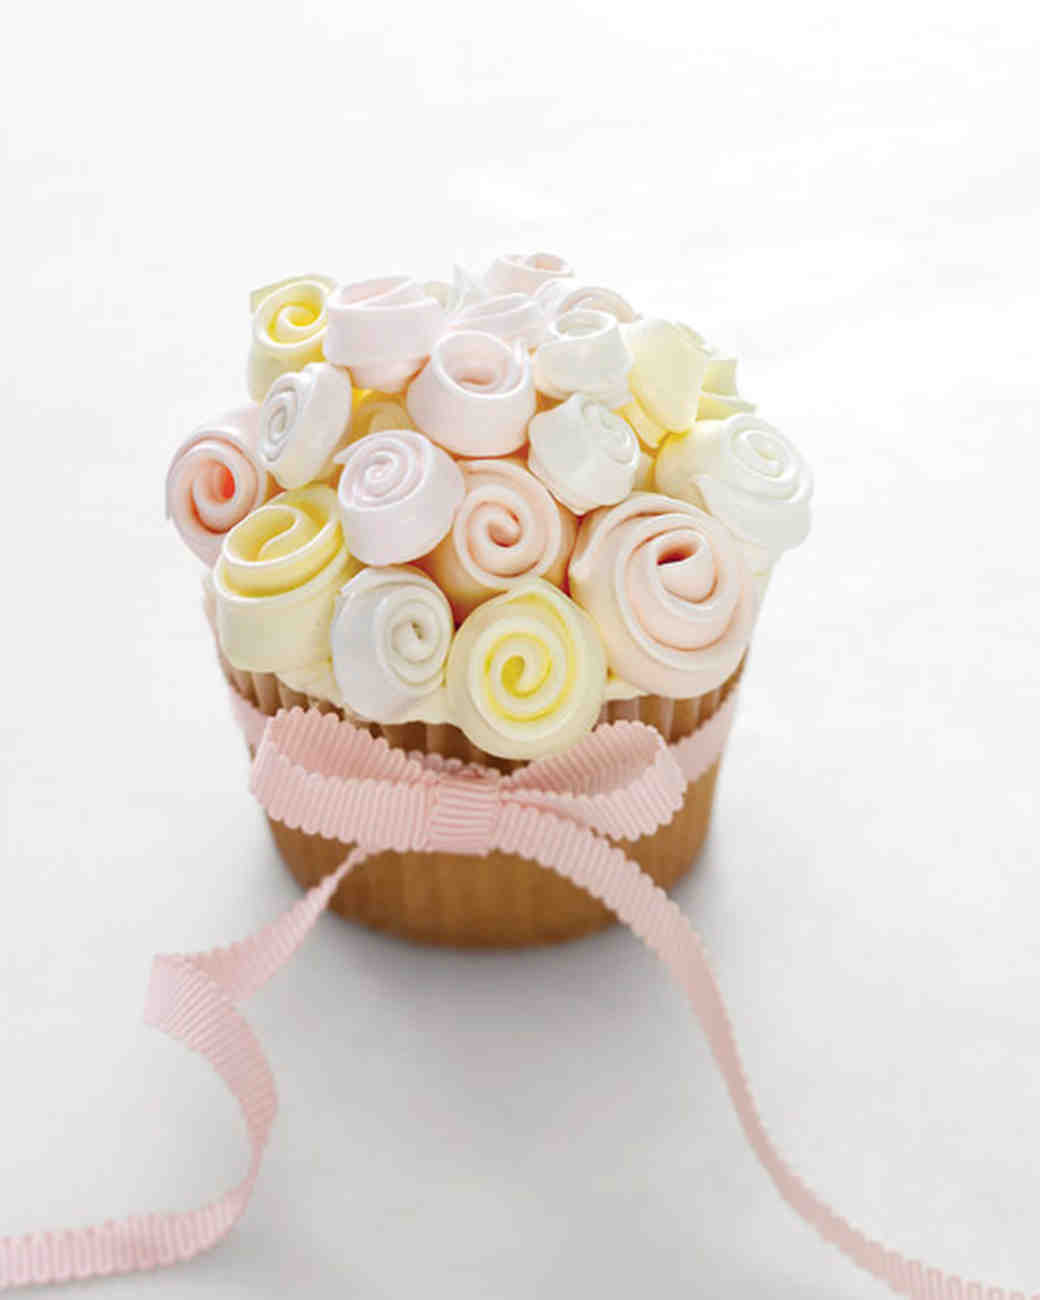 Wedding Cup Cakes Recipes  Swiss Meringue Buttercream for Meringue Bouquet Cupcakes